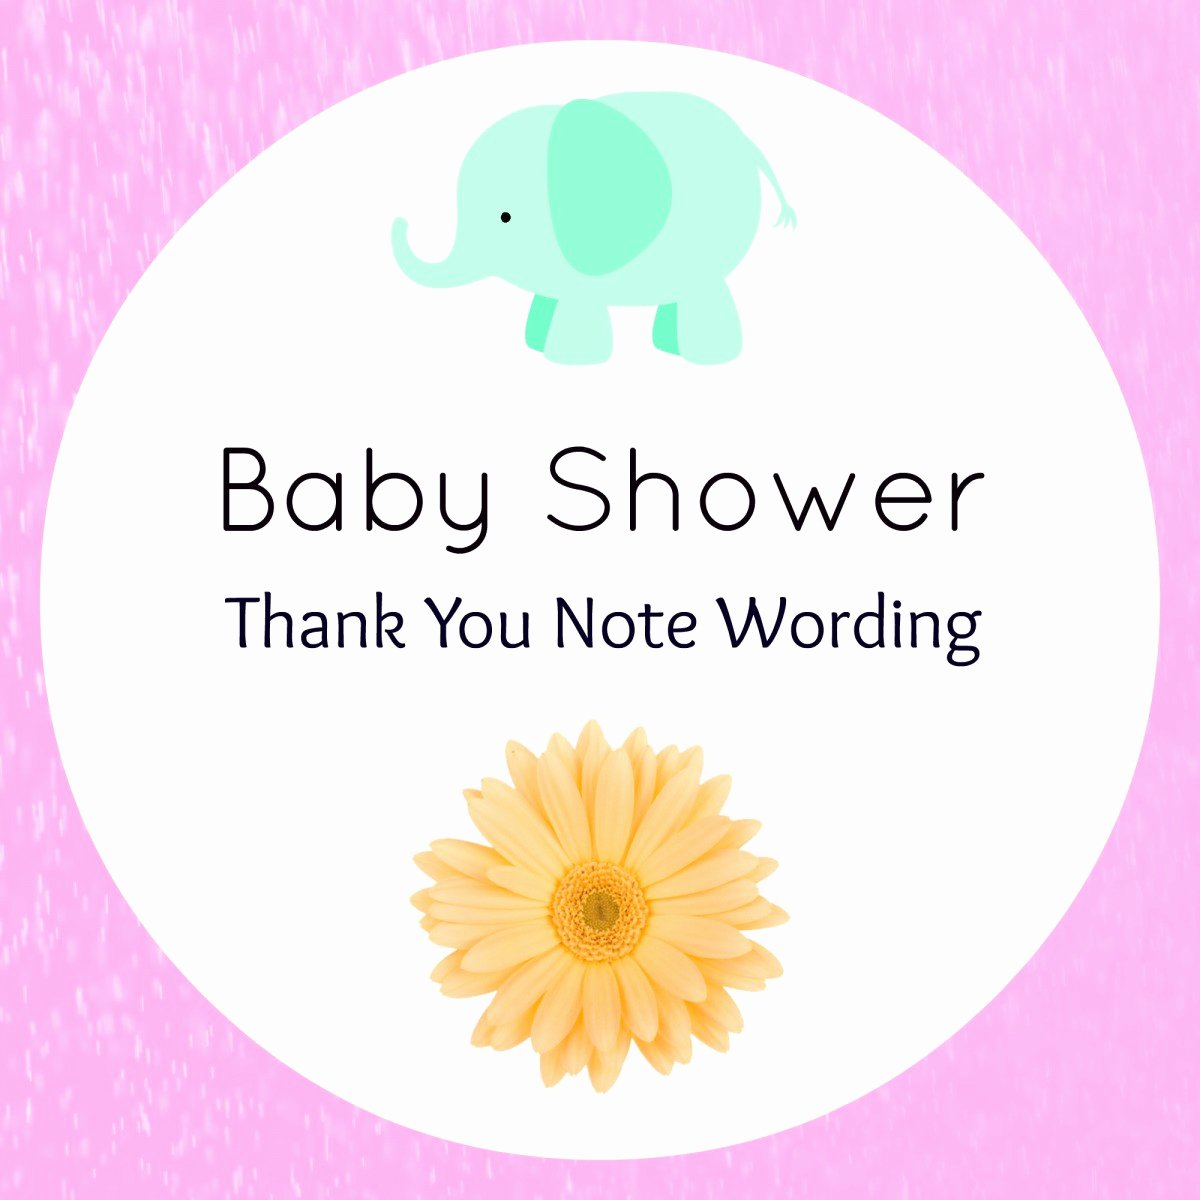 Thank You Letter Baby Shower Fresh Baby Shower Thank You Wording Handmade Gift